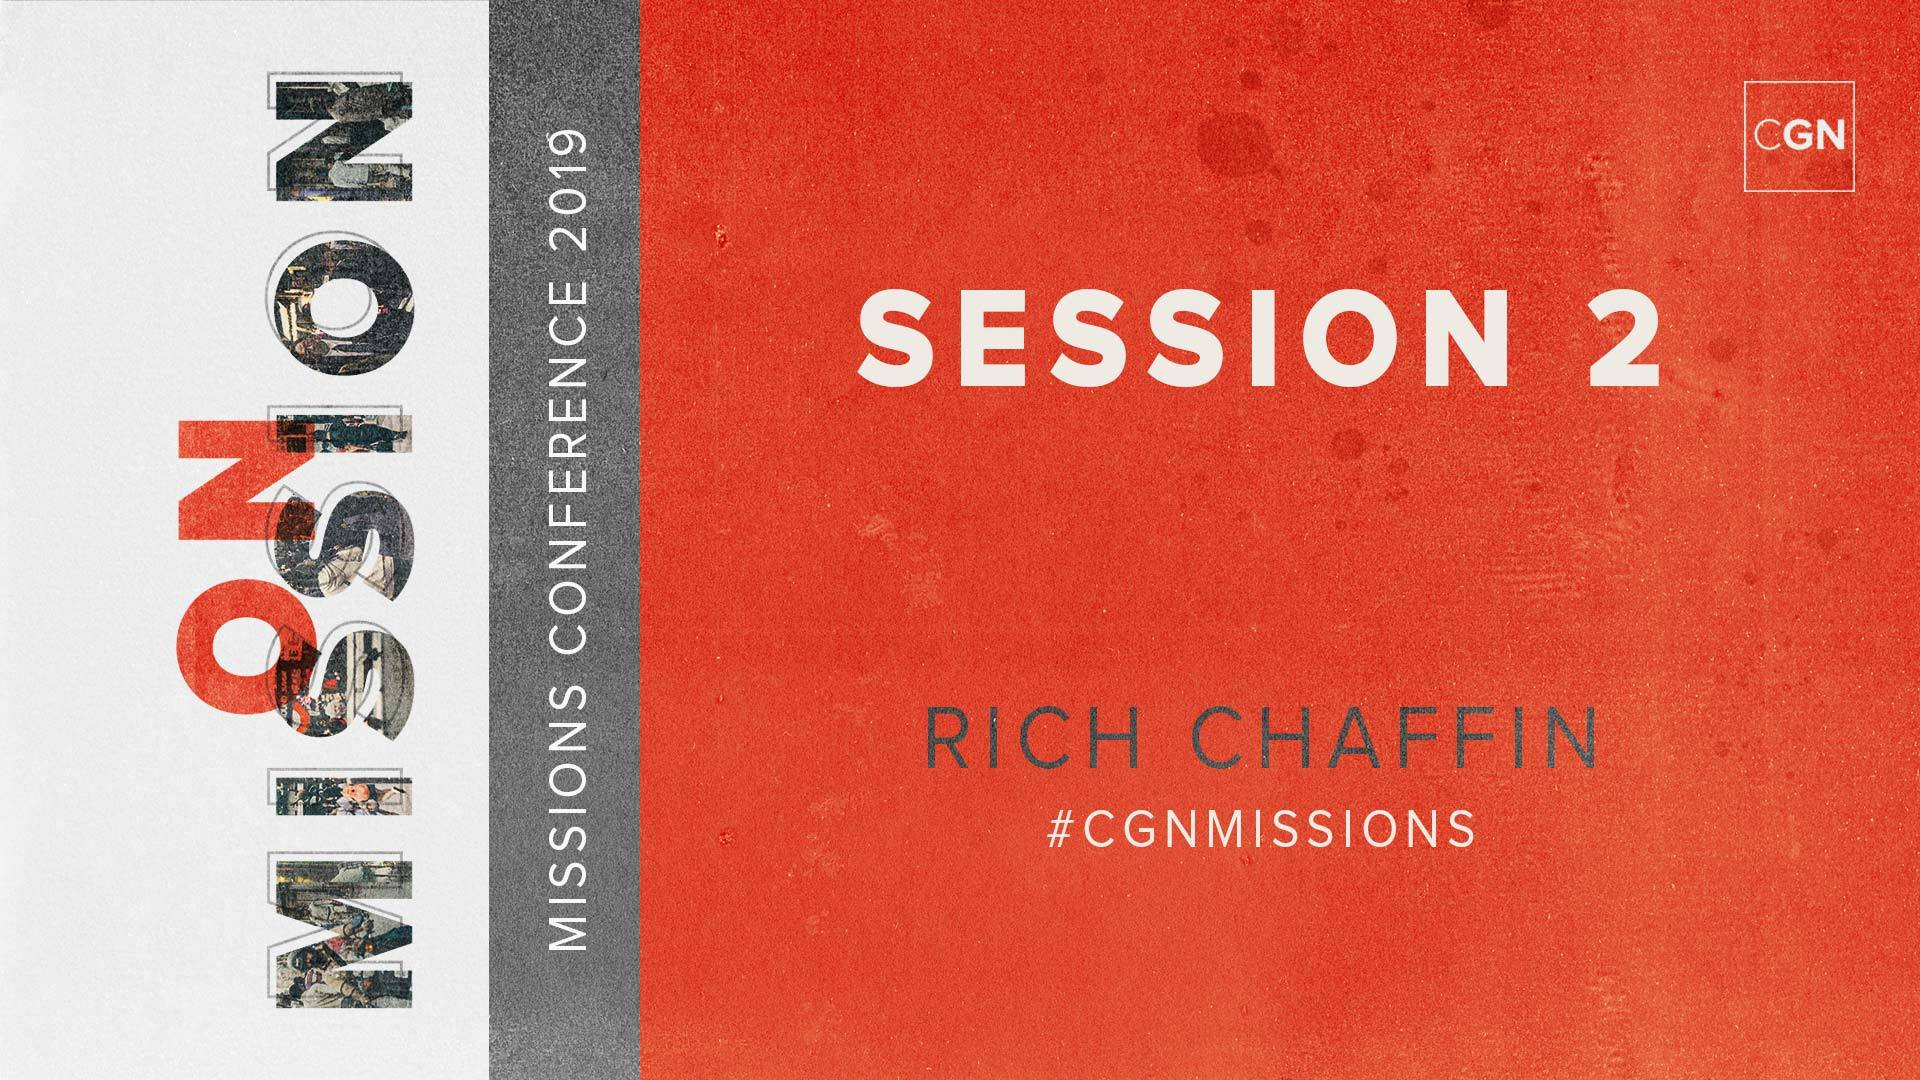 Session #2 - Rich Chaffin